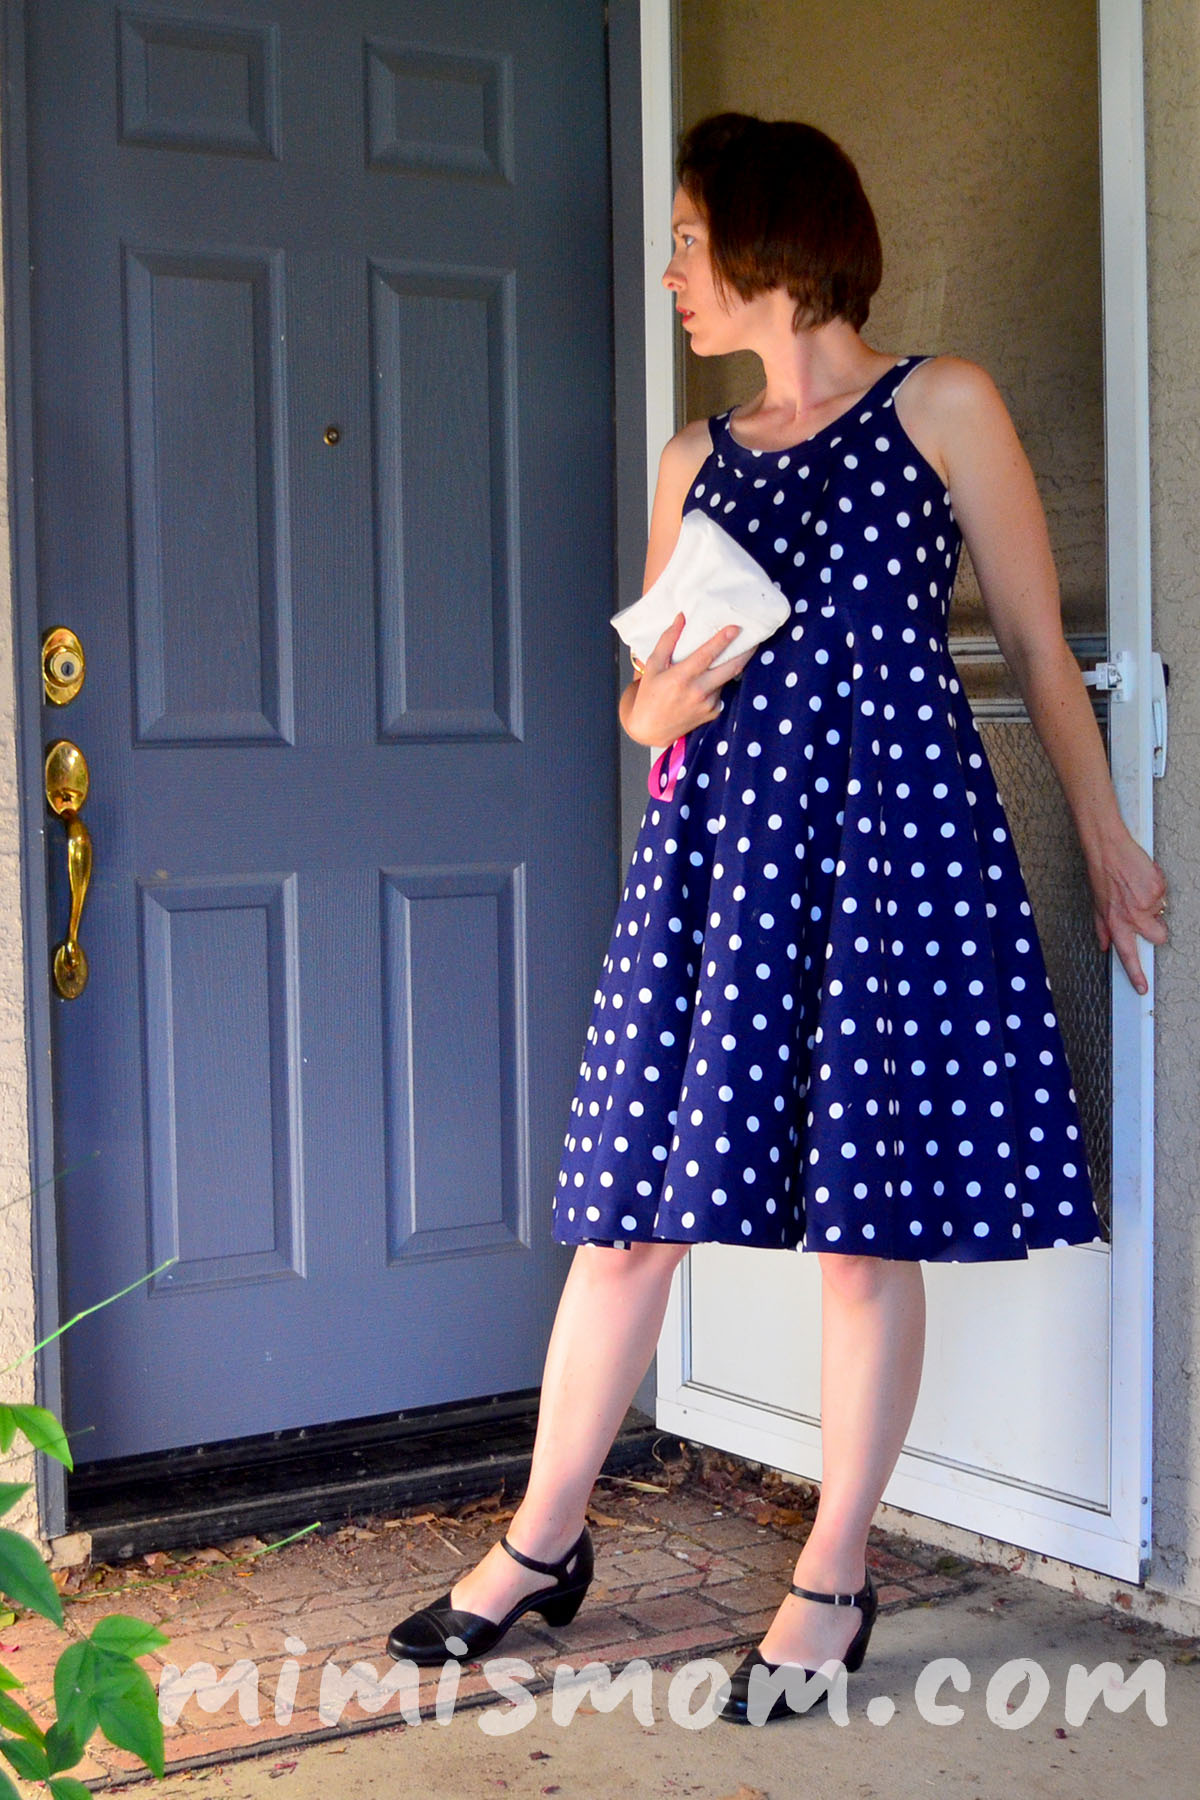 Lorelei Dress Blog Tour